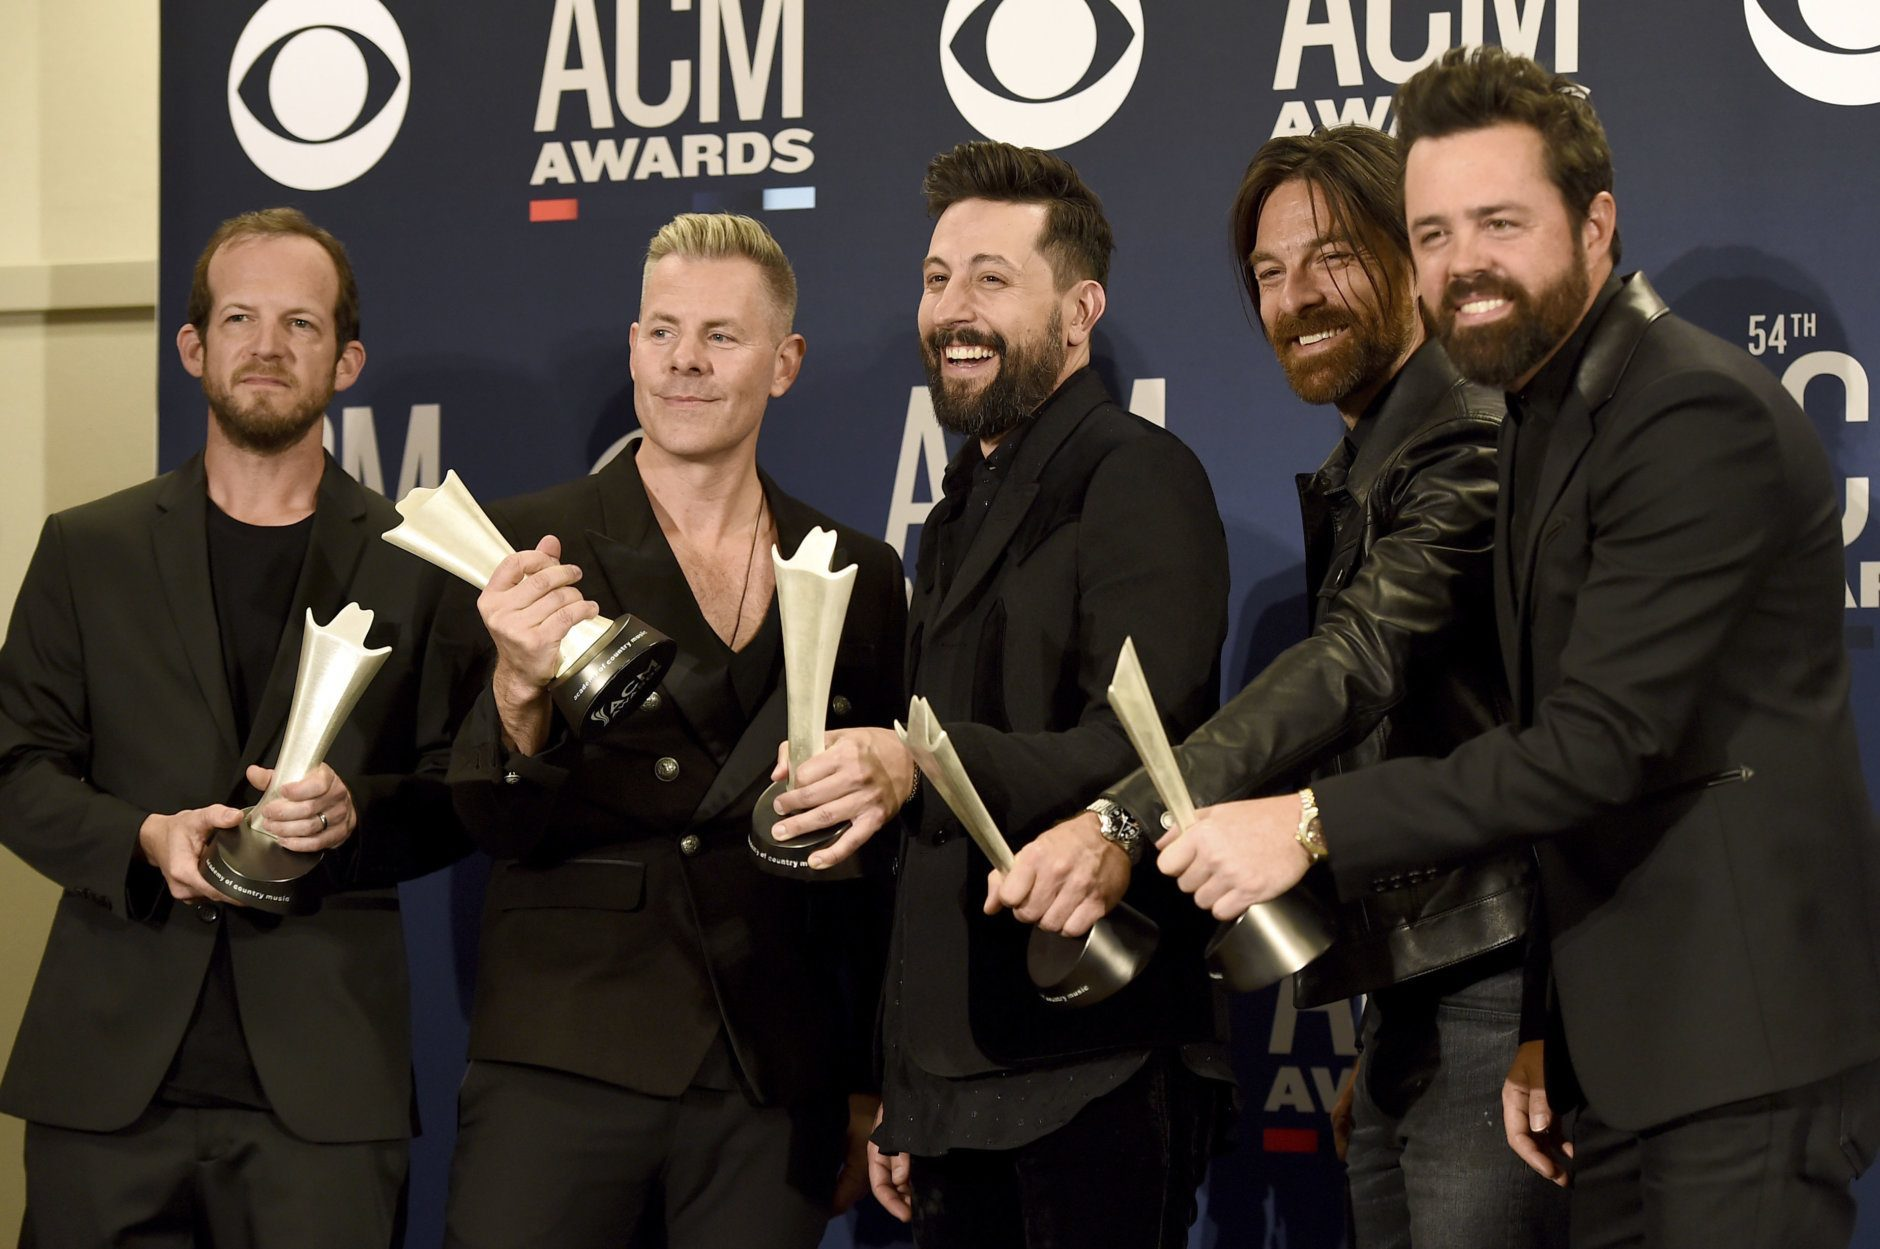 Whit Sellers, from left, Trevor Rosen, Matthew Ramsey, Geoff Sprung and Brad Tursi, of Old Dominion, pose in the press room with the award for group of the year at the 54th annual Academy of Country Music Awards at the MGM Grand Garden Arena on Sunday, April 7, 2019, in Las Vegas. (Photo by Jordan Strauss/Invision/AP)